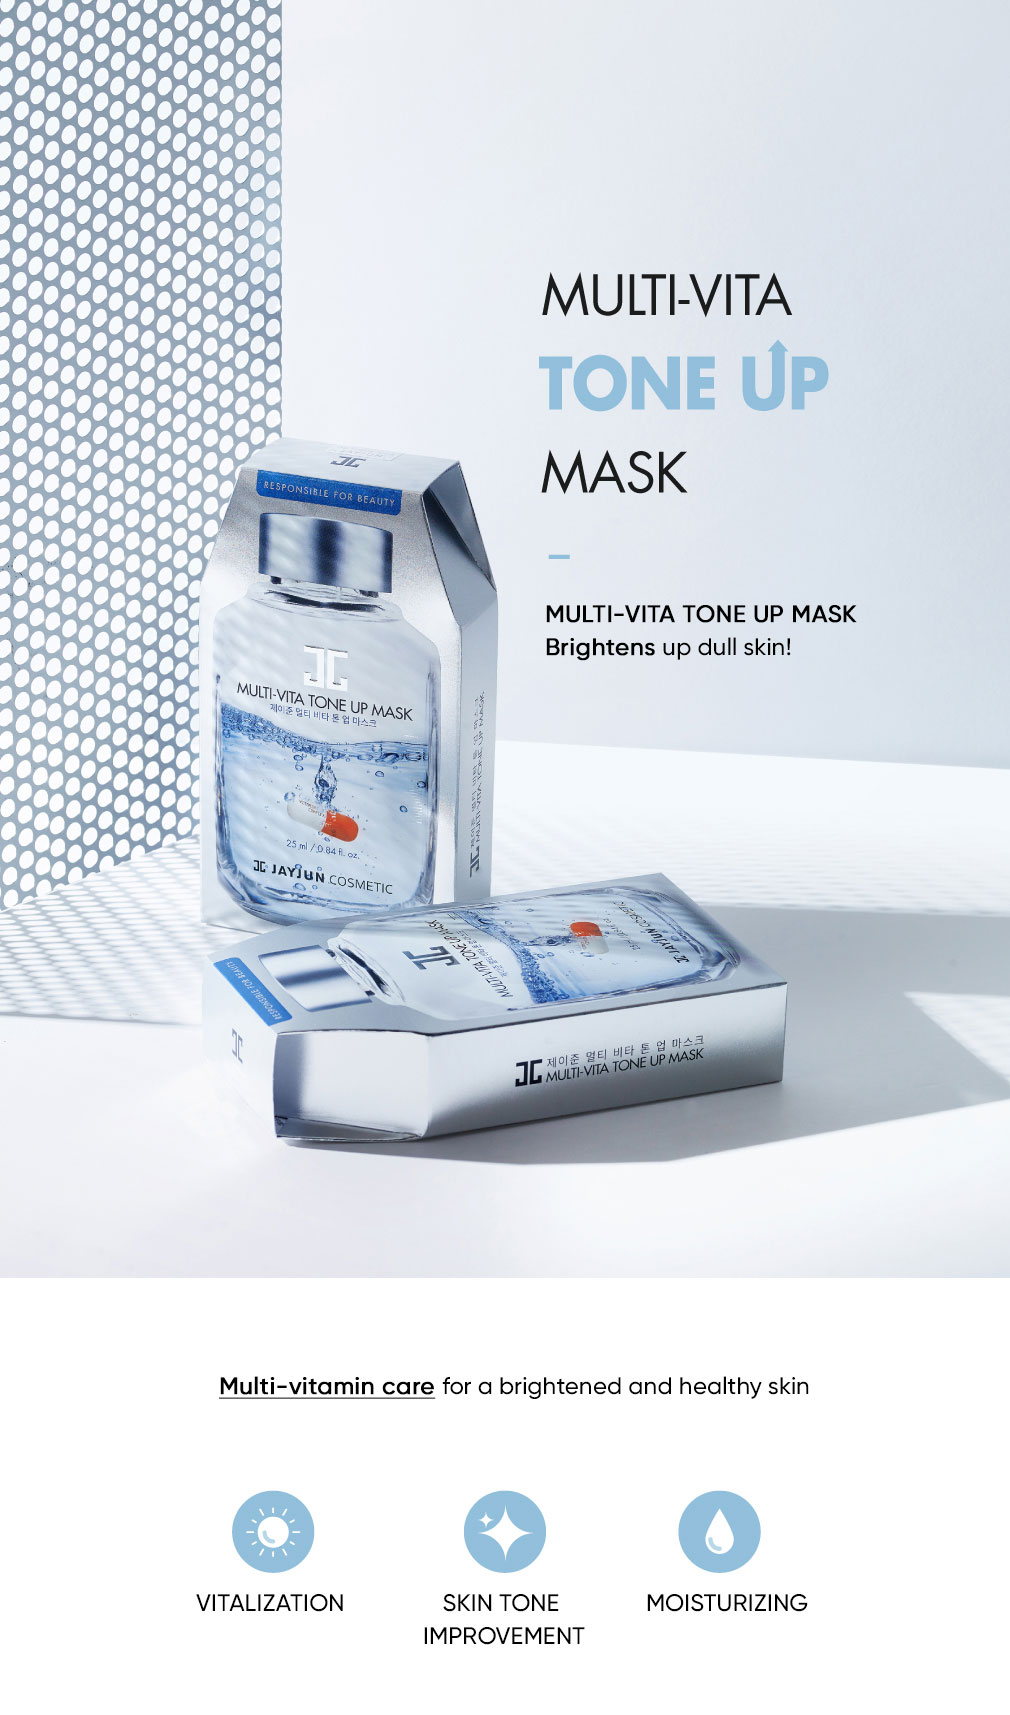 Jayjun Multi-Vita Tone-up Mask